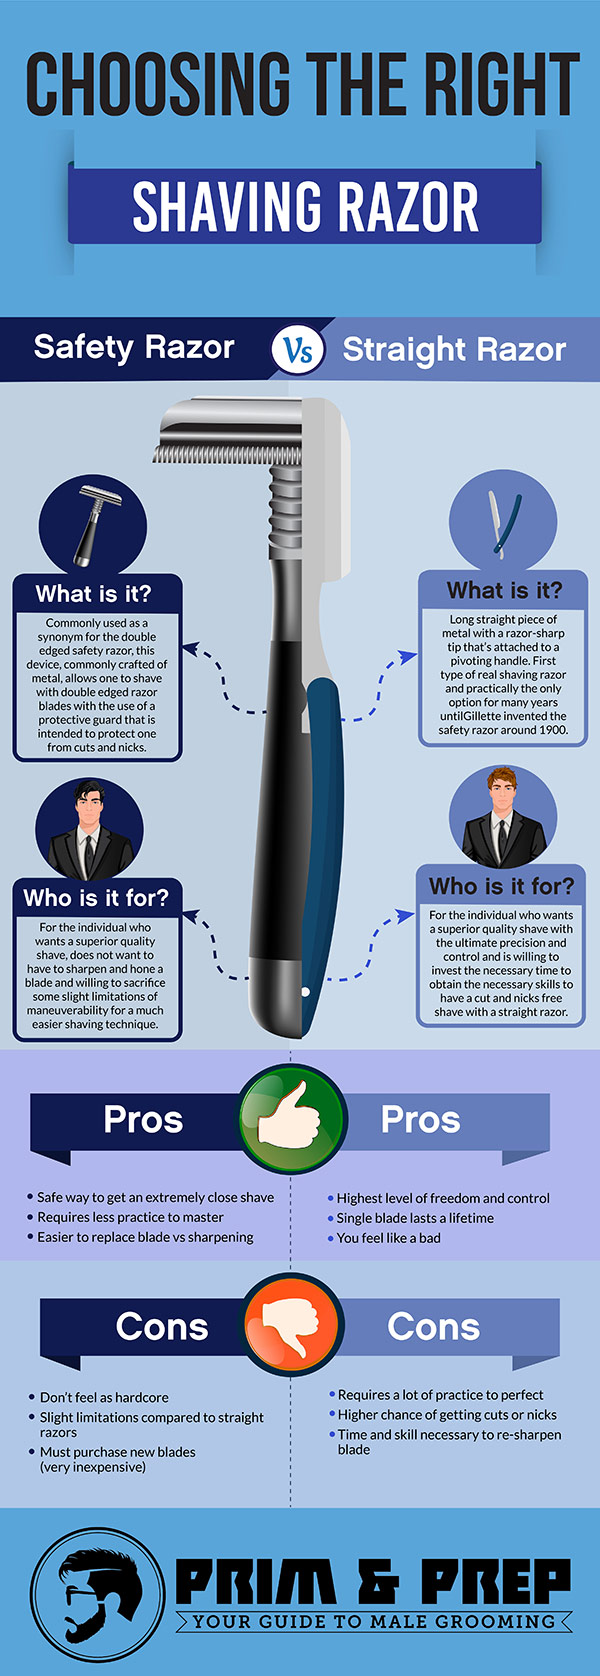 Safety razor vs. straight razor comparison infographic